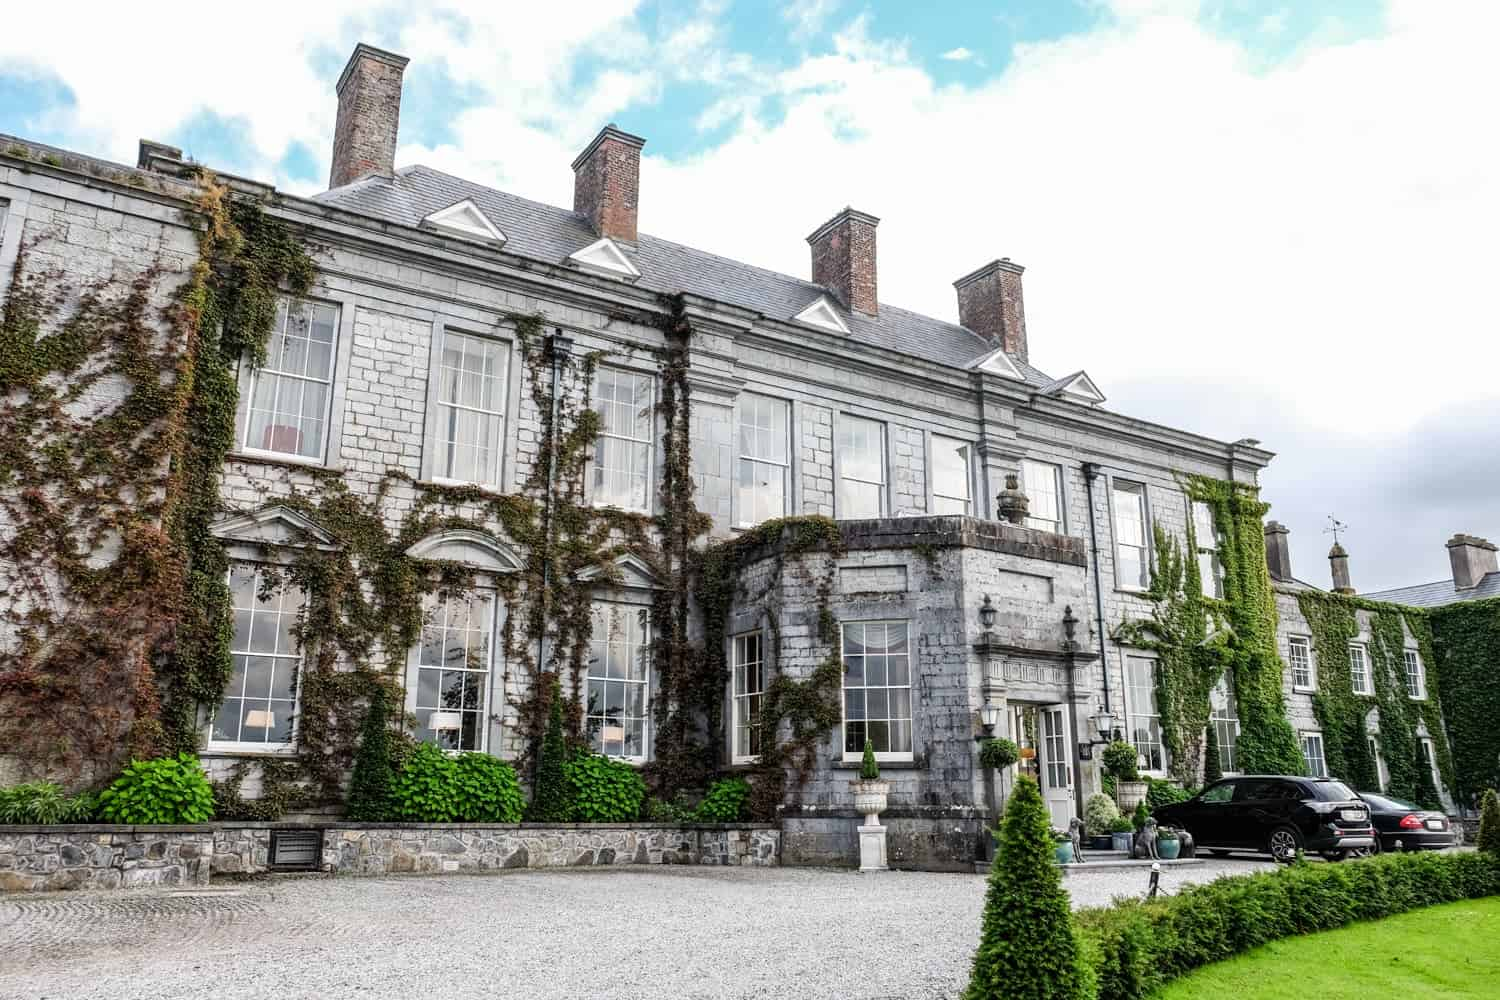 Castle Durrow, Durrow, Ireland, Ireland's Ancient East